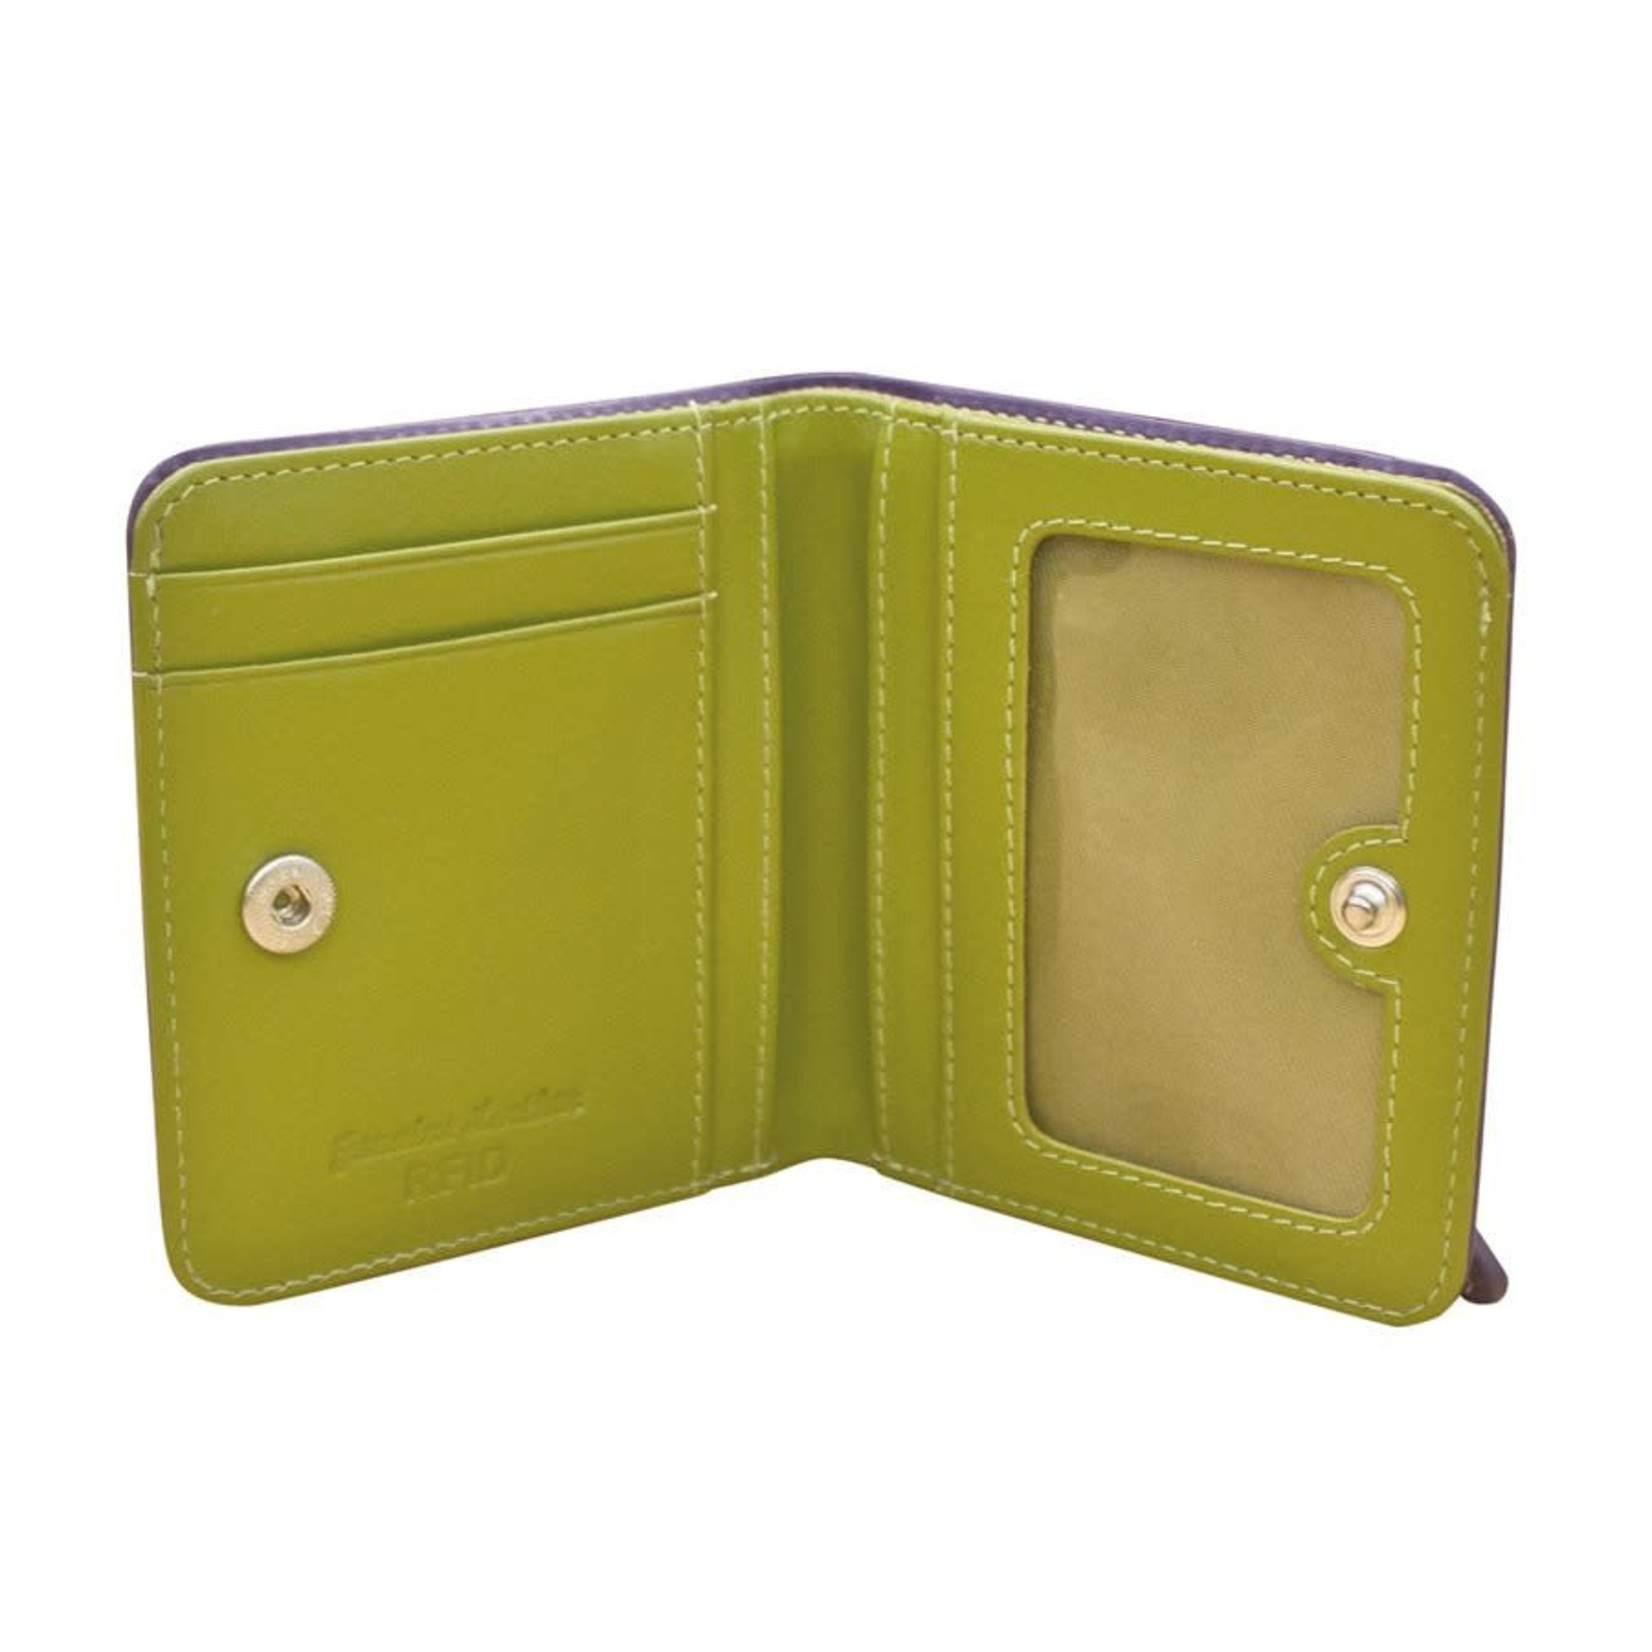 Leather Handbags and Accessories 7831 Purple/Moss Green - RFID Mini Wallet Two Toned